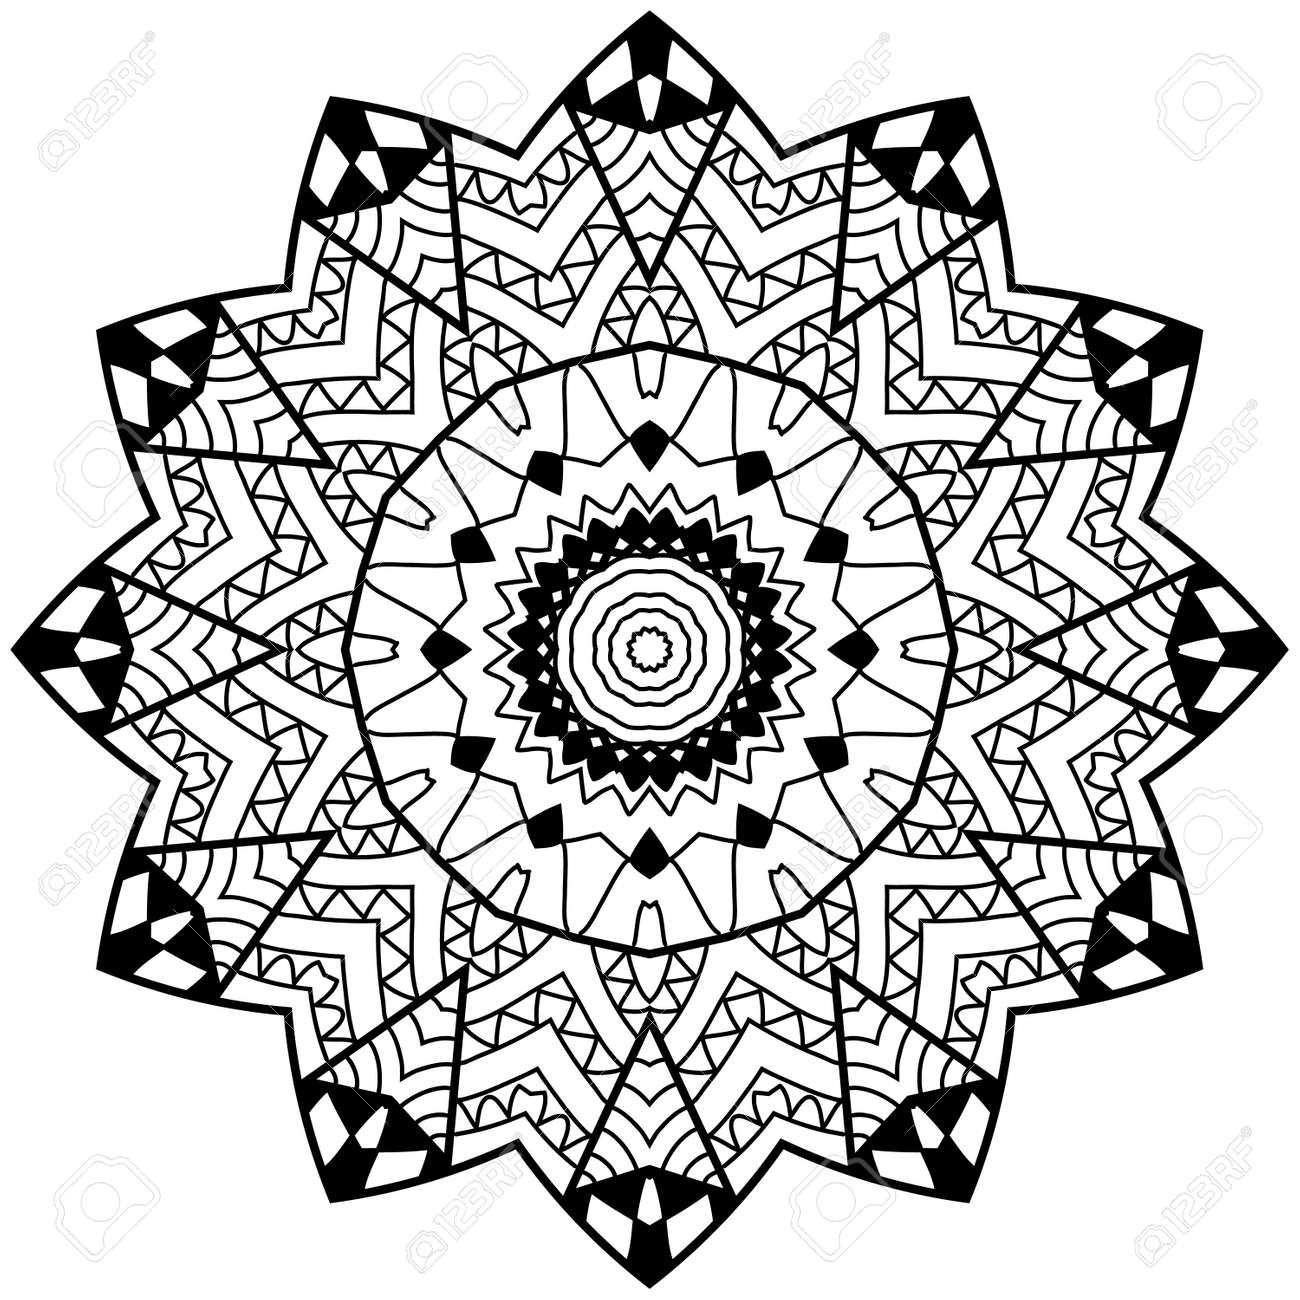 Adult Coloring Page Floral Doodle Art Mandala With Hand Drawn